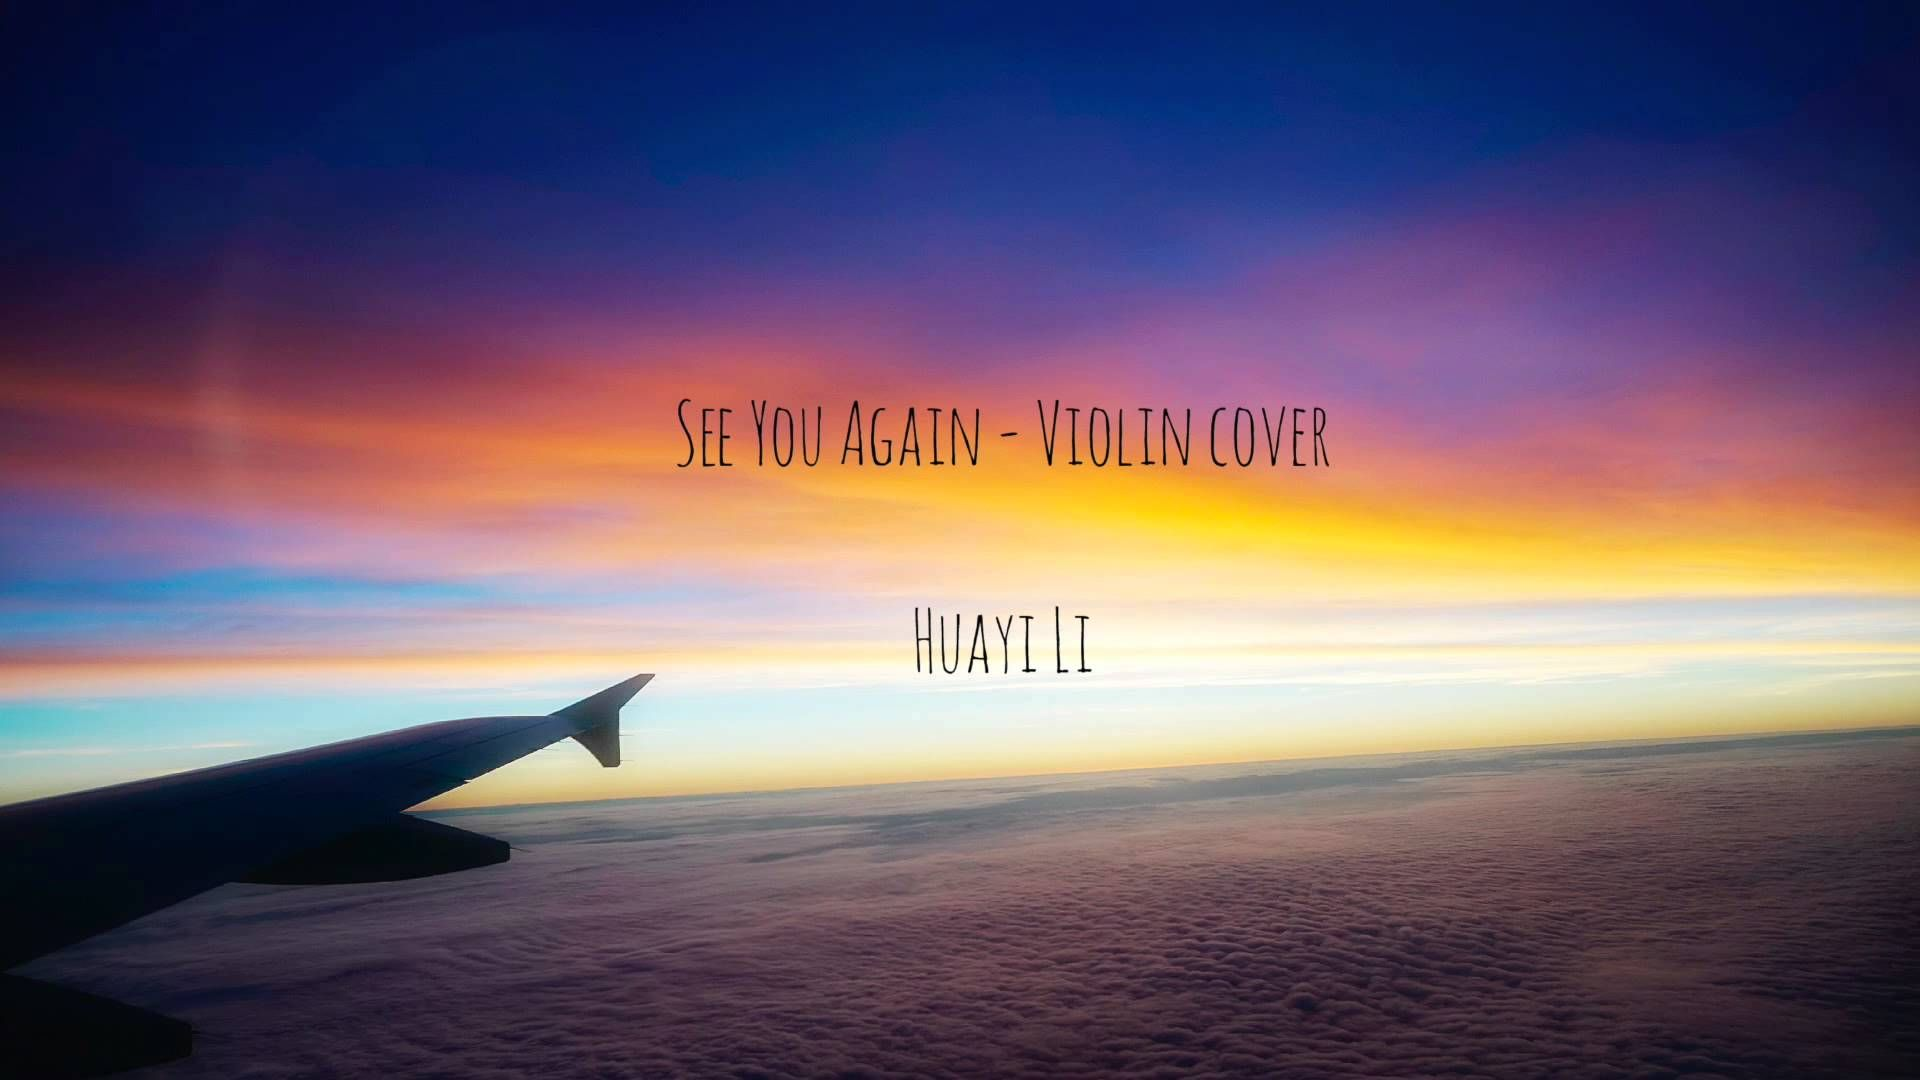 SEE YOU AGAIN (AUDIO) - VIOLIN COVER - Huayi Li